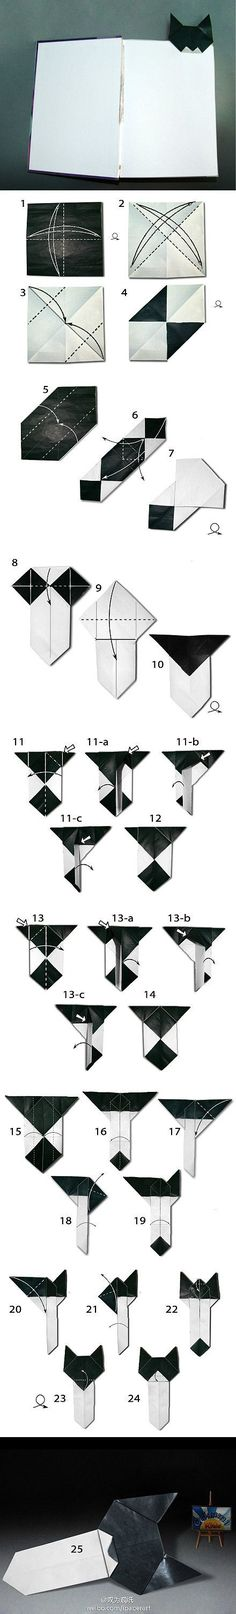 7 Best Step By Step Origami Images On Pinterest Origami